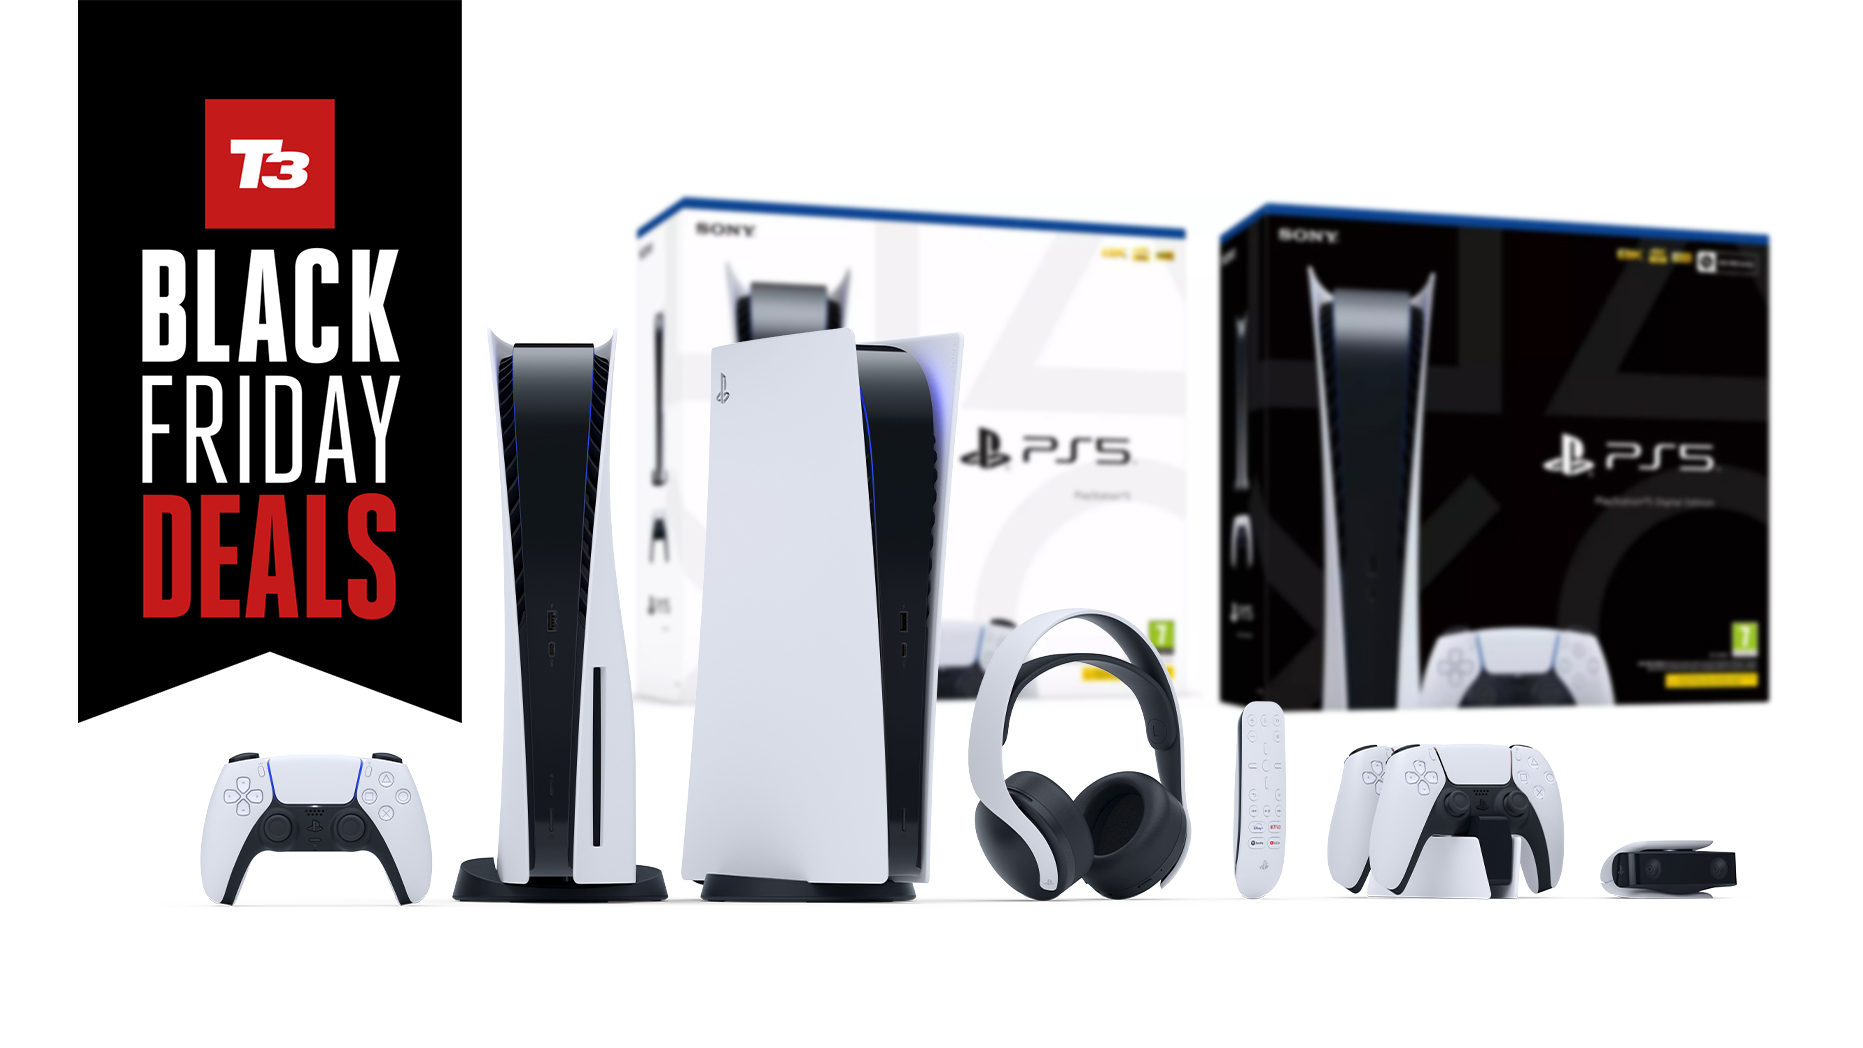 Ps5 Black Friday Deals Consoles Tvs Accessories And Games T3